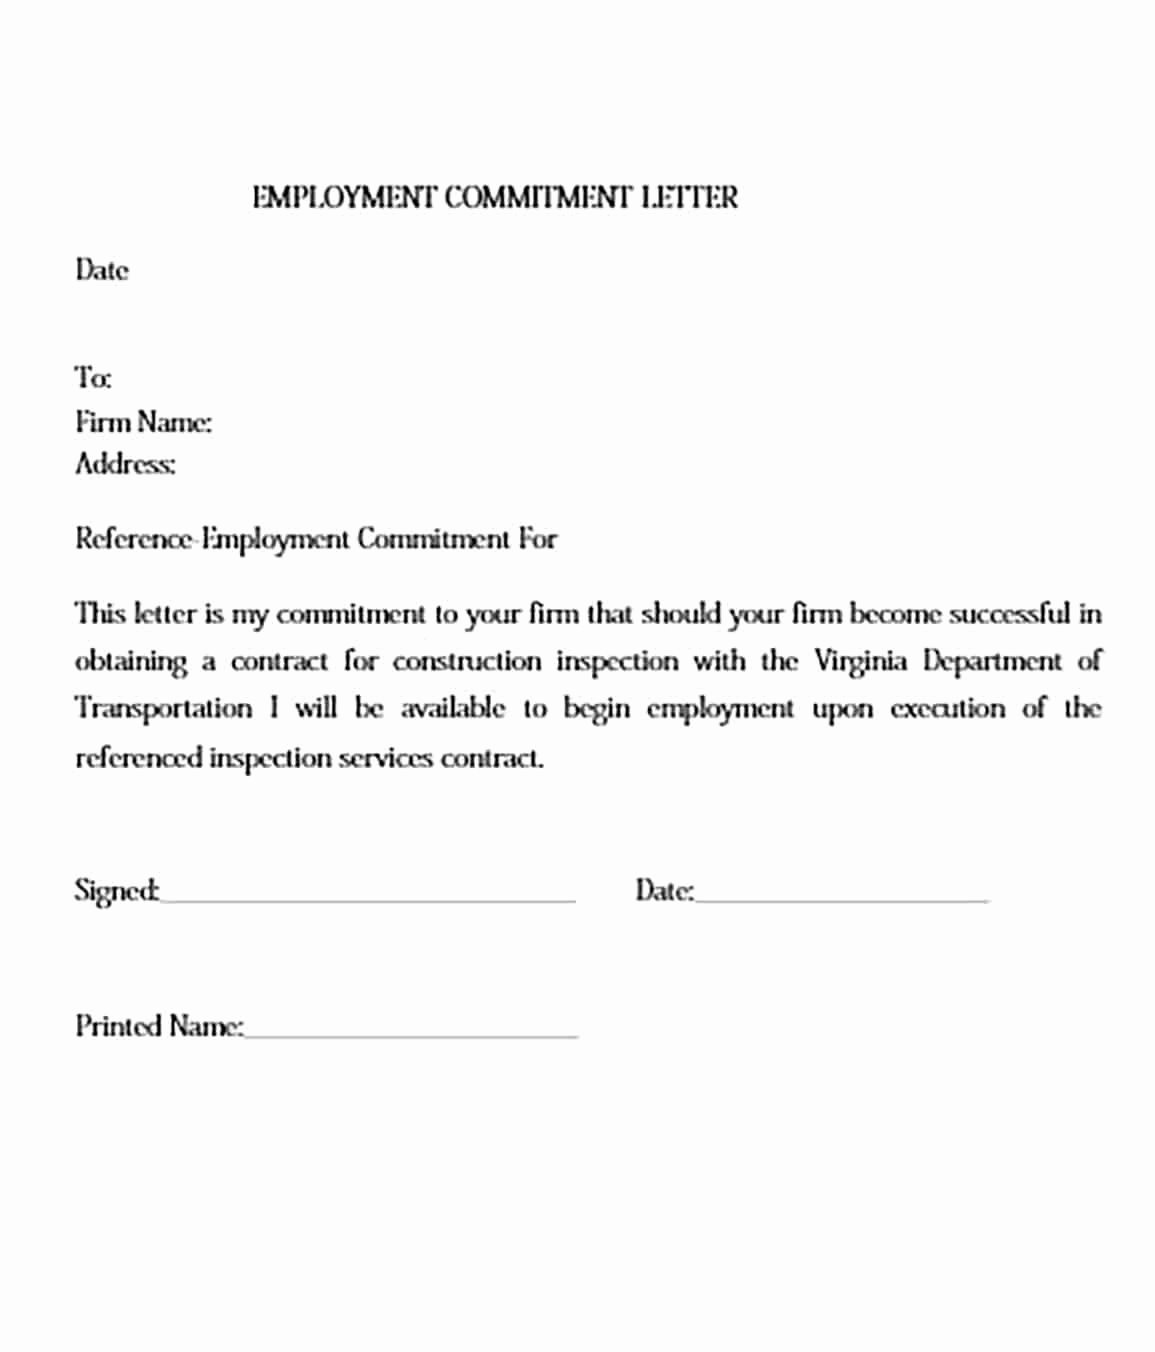 Employment Commitment Letter Lovely Mitment Letter and How to Make It Impressive to Read